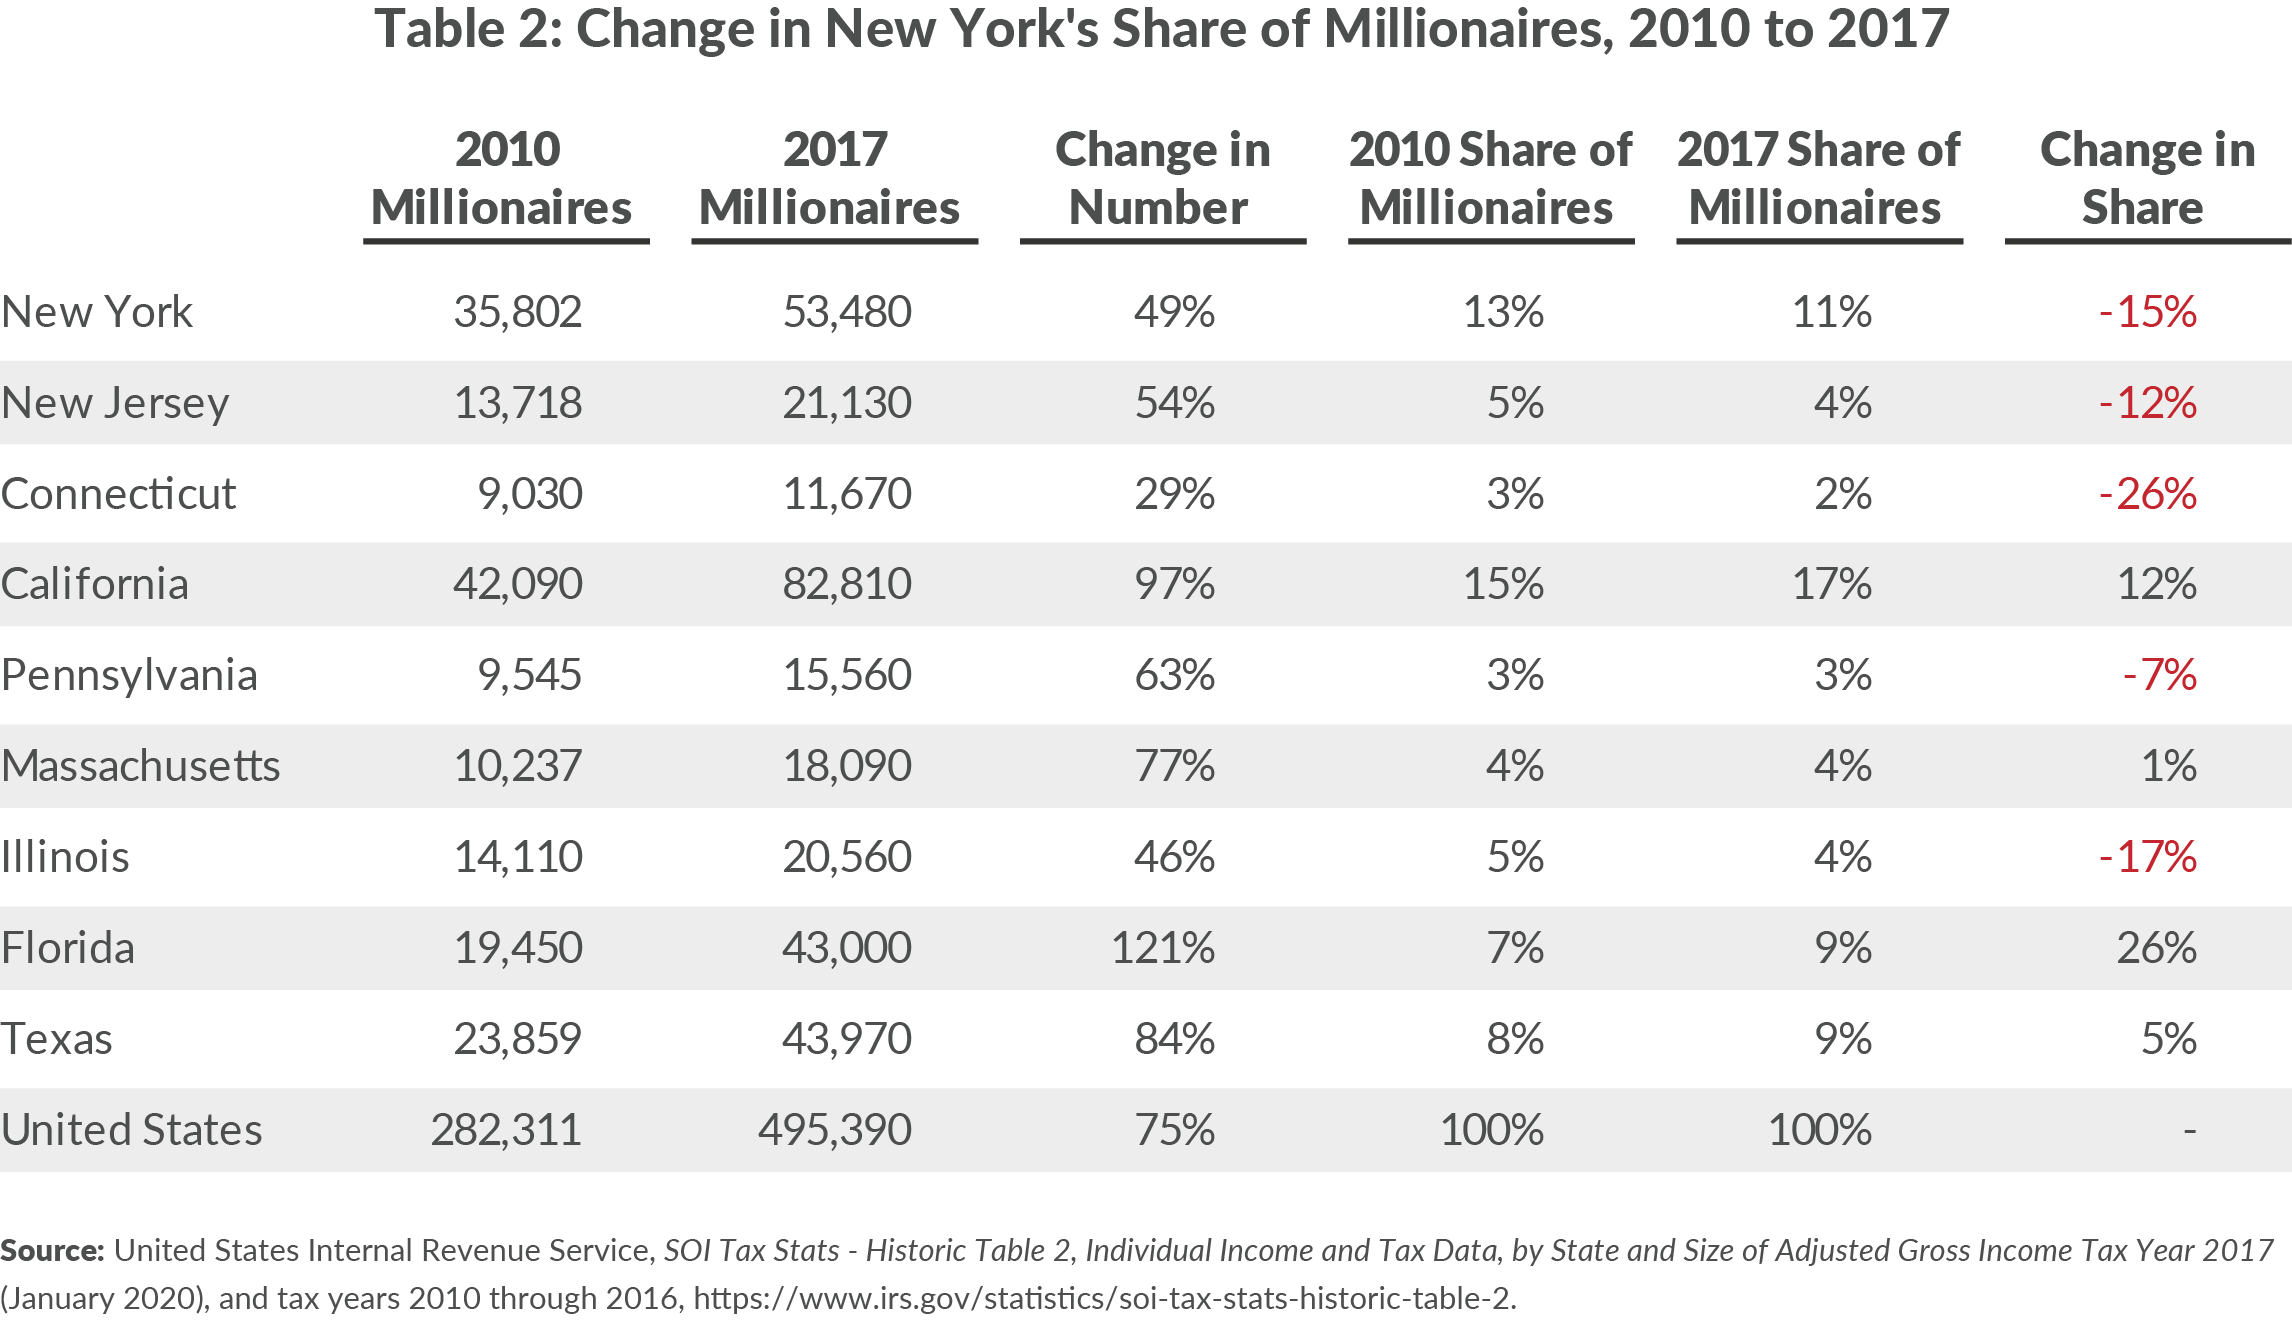 Table 2: Change in New York's Share of Millionaires, 2010 to 2017